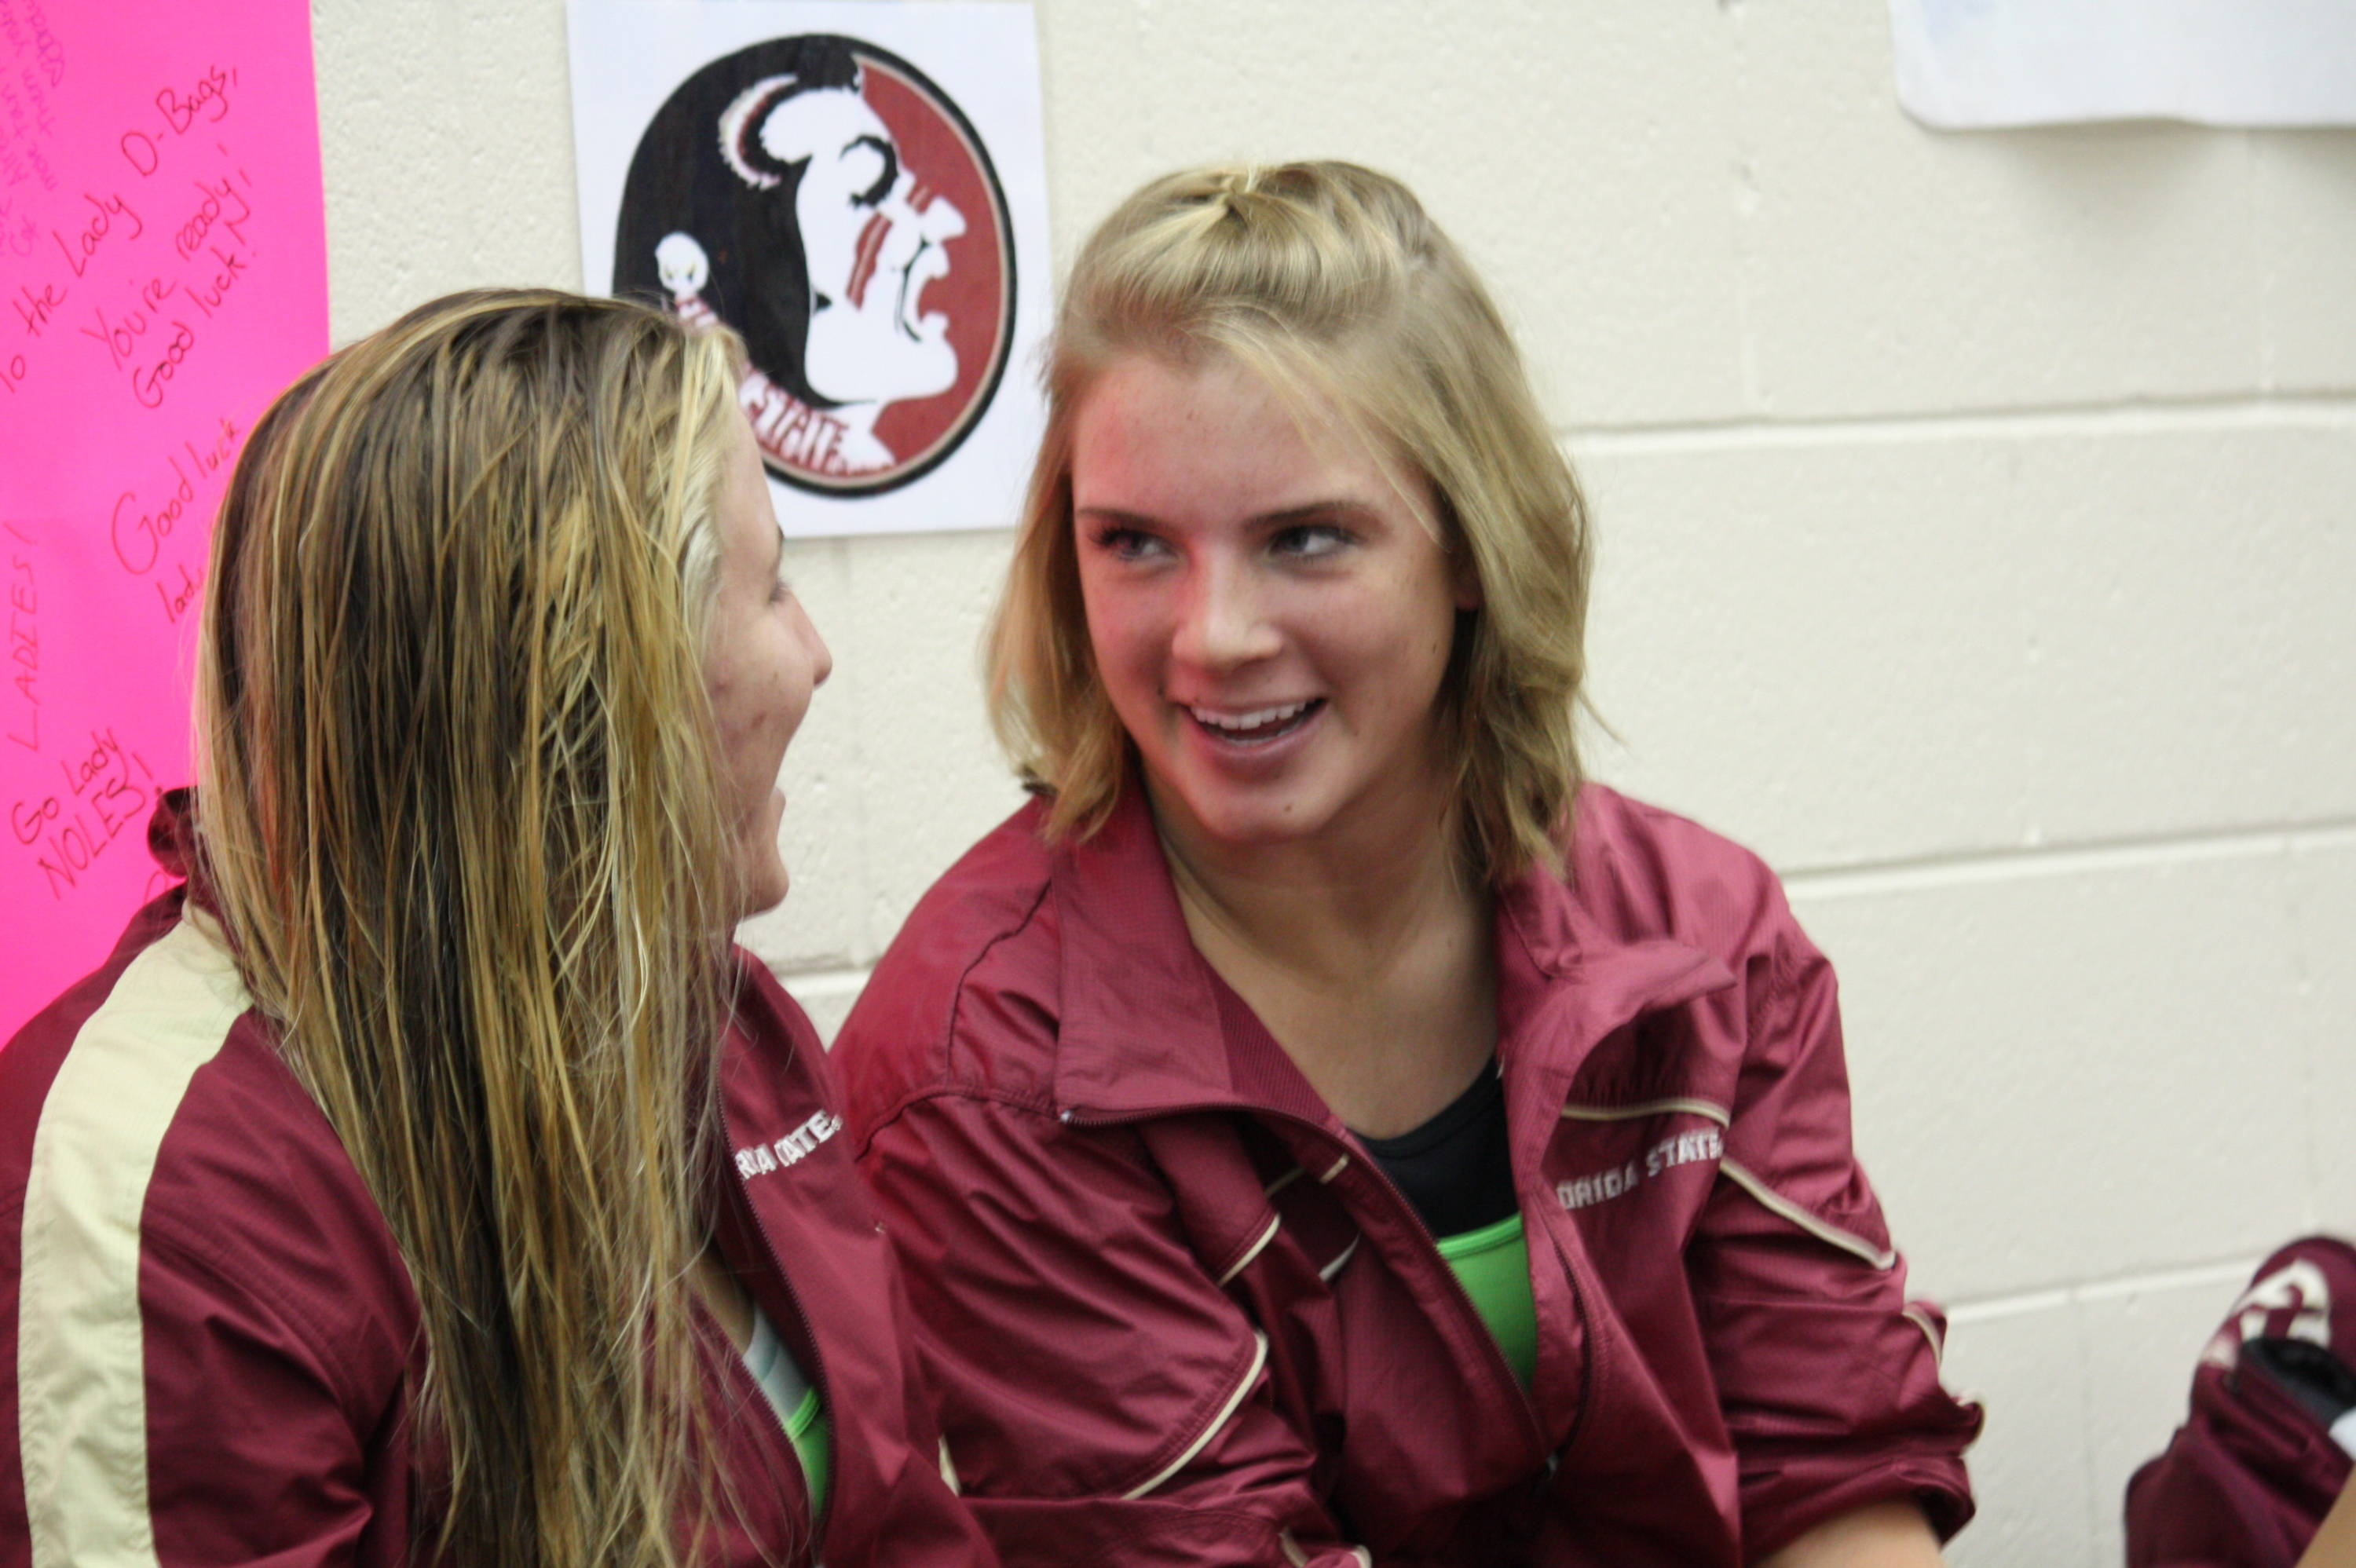 Ariel Rittenhouse and Katrina Young take a break from cheering on the swimmers to talk about their diving skills.